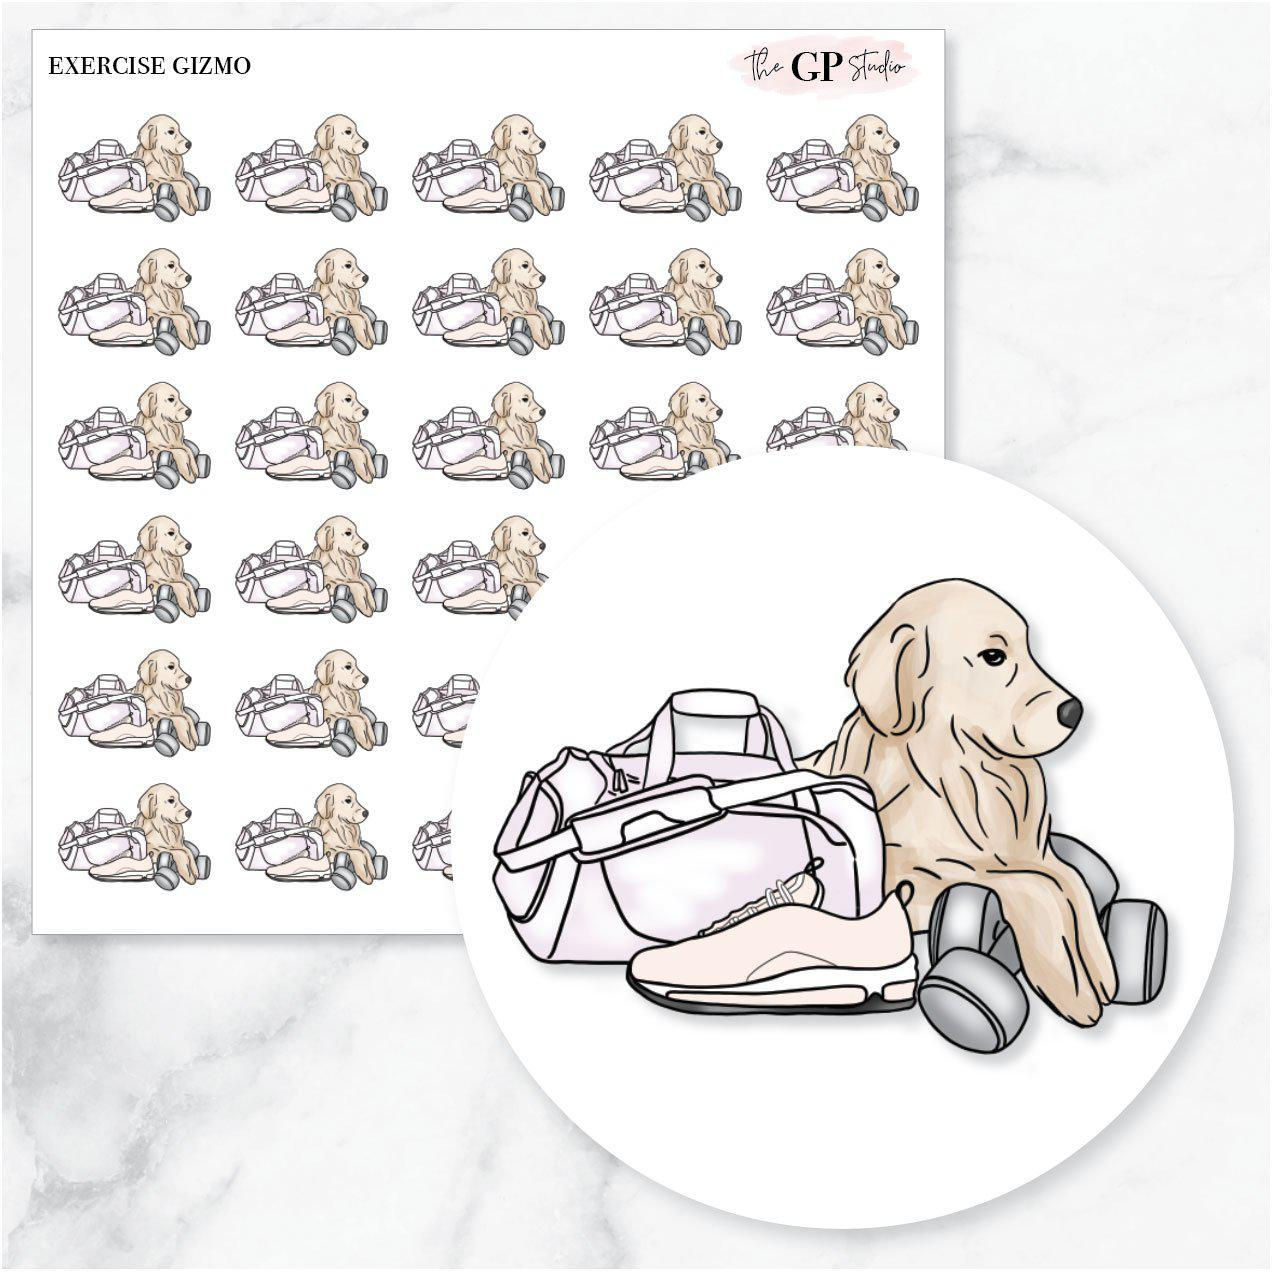 EXERCISE GIZMO Planner Stickers-The GP Studio